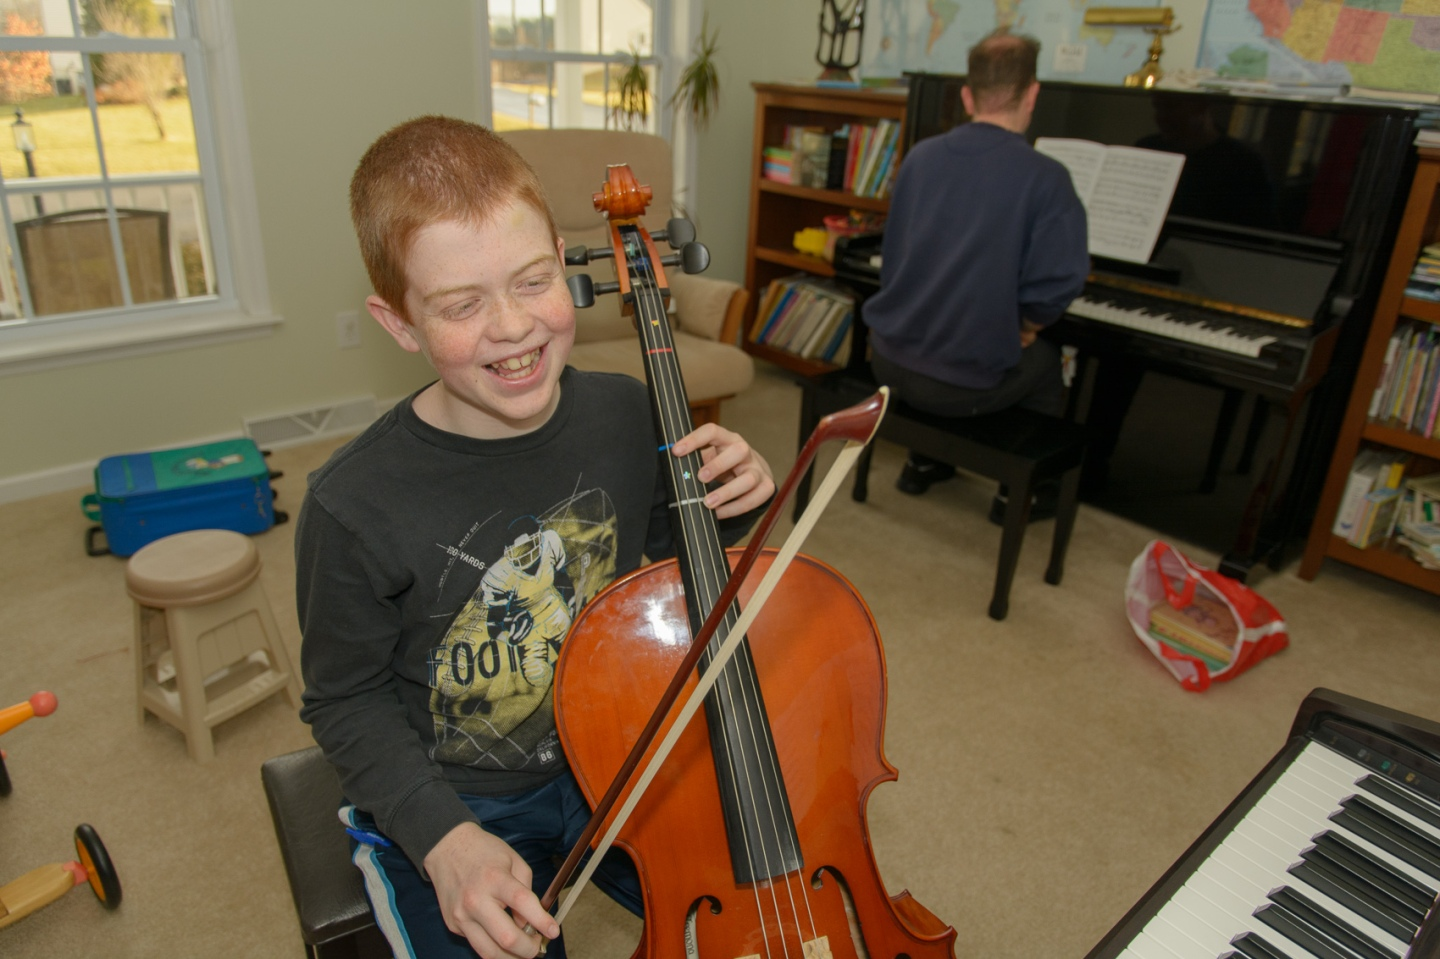 boy laughing while playing cello